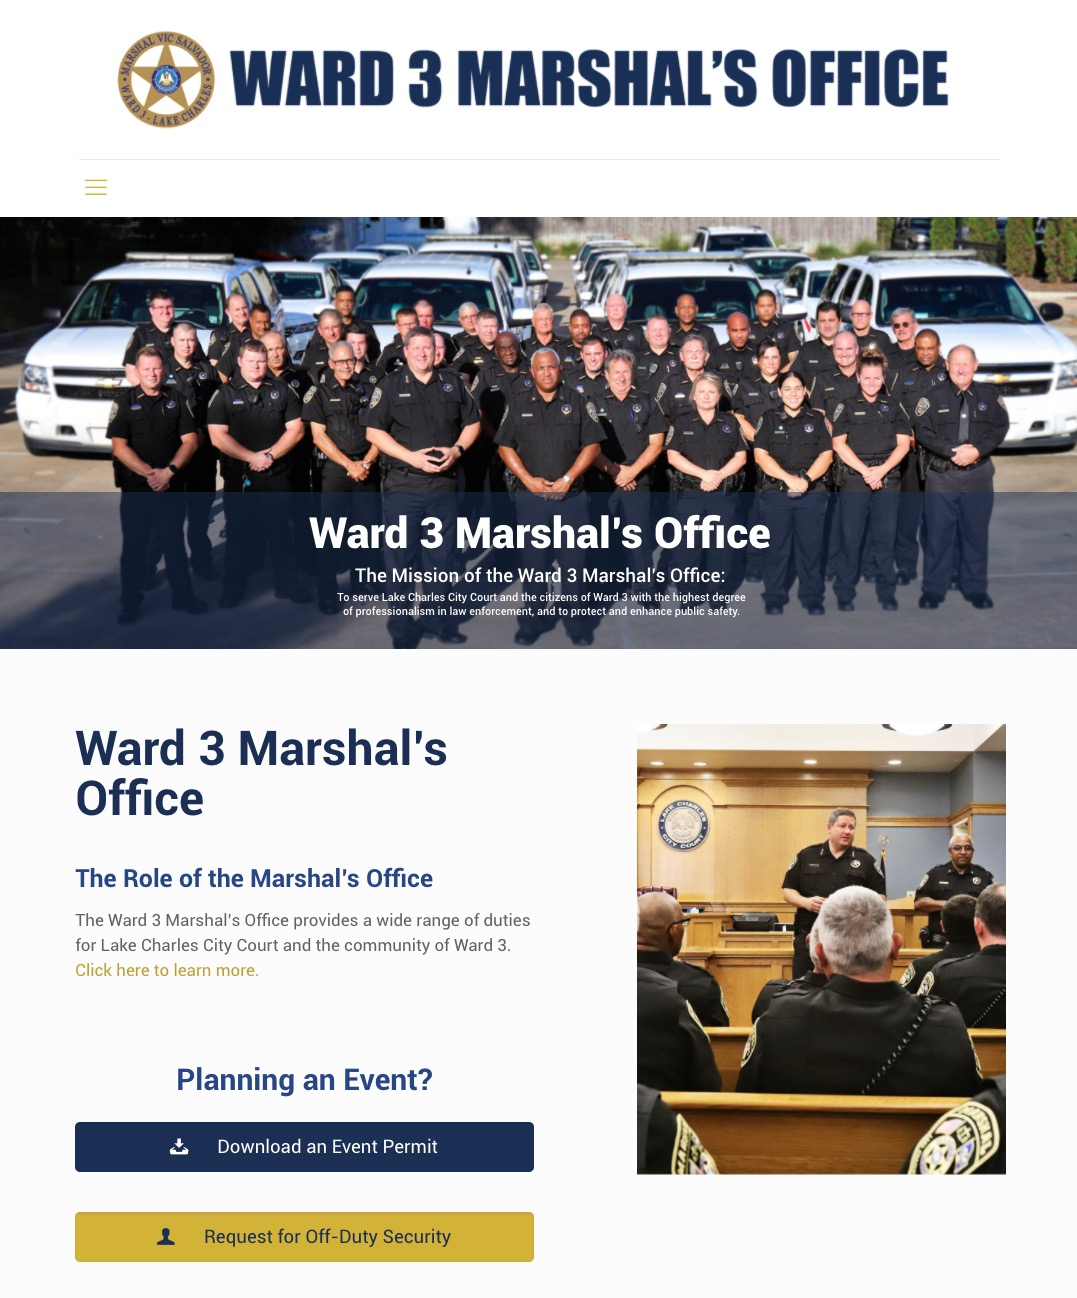 Ward 3 Marshal's Office